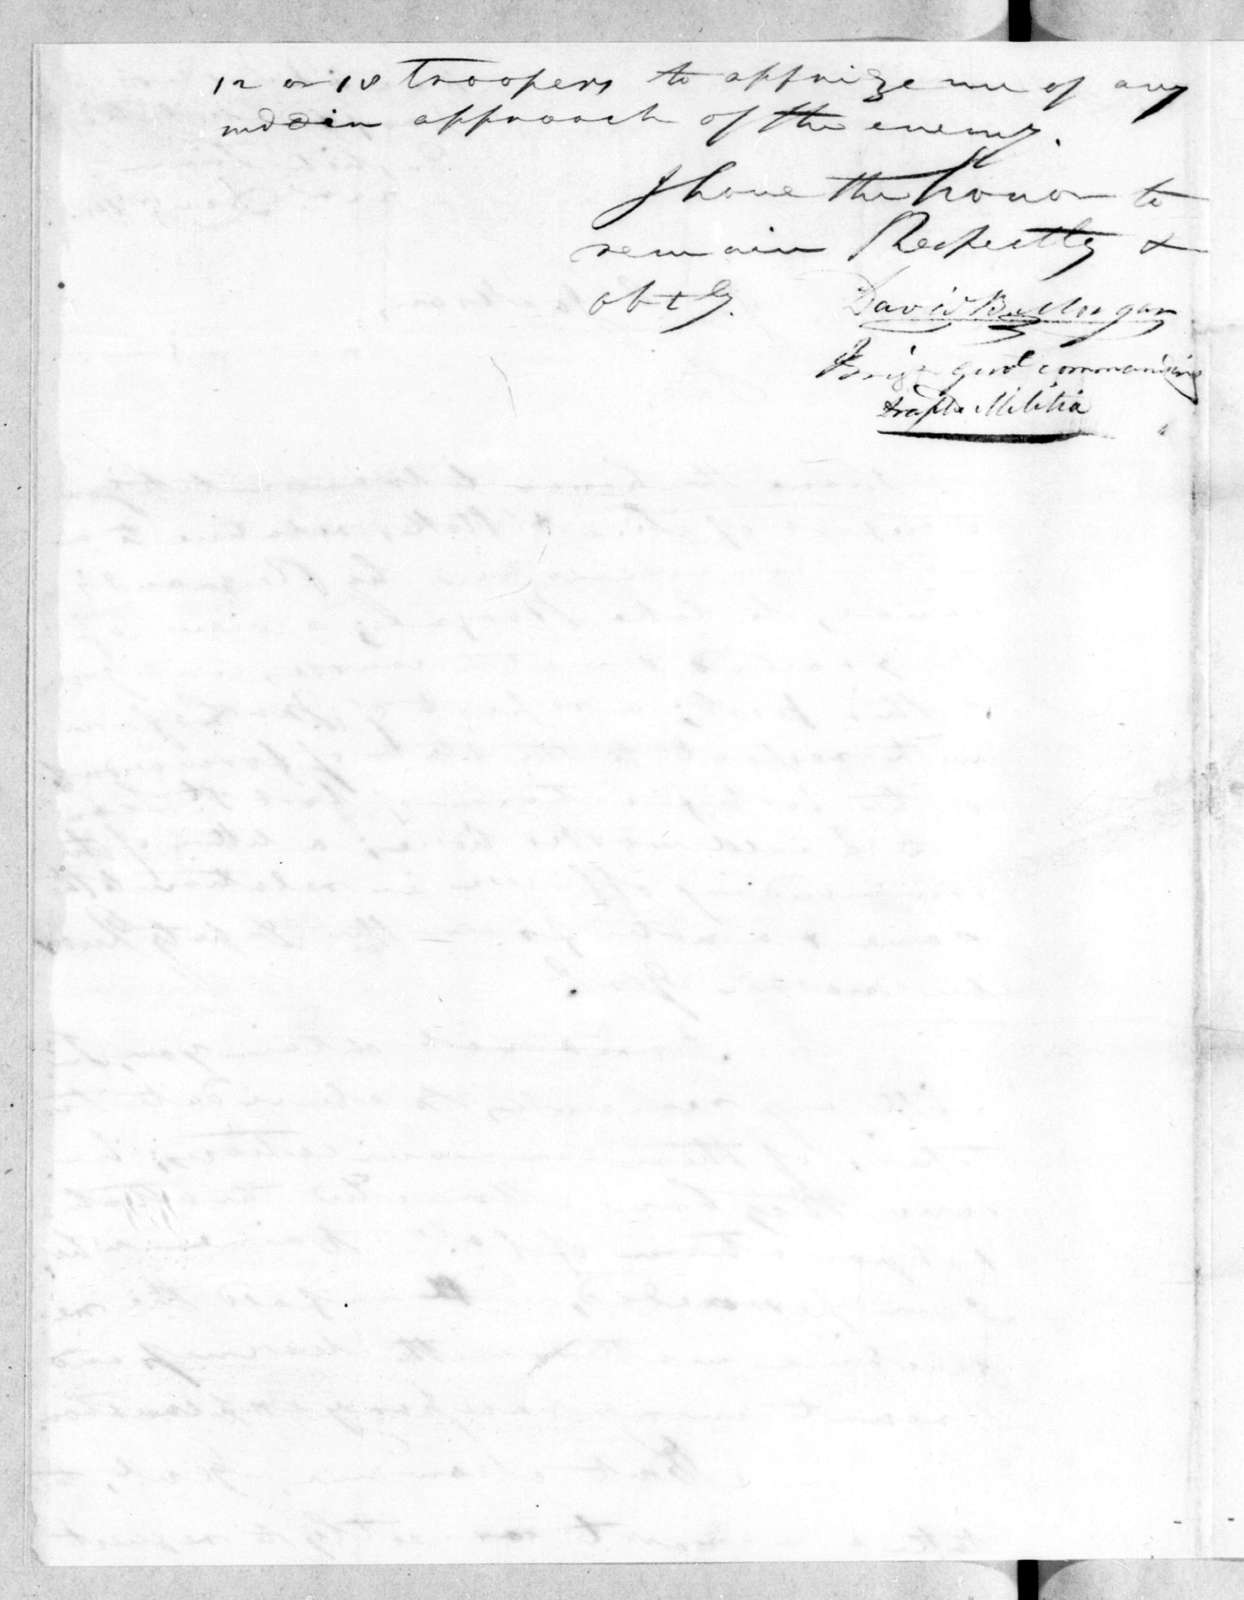 David Bannister Morgan to Andrew Jackson, December 22, 1814